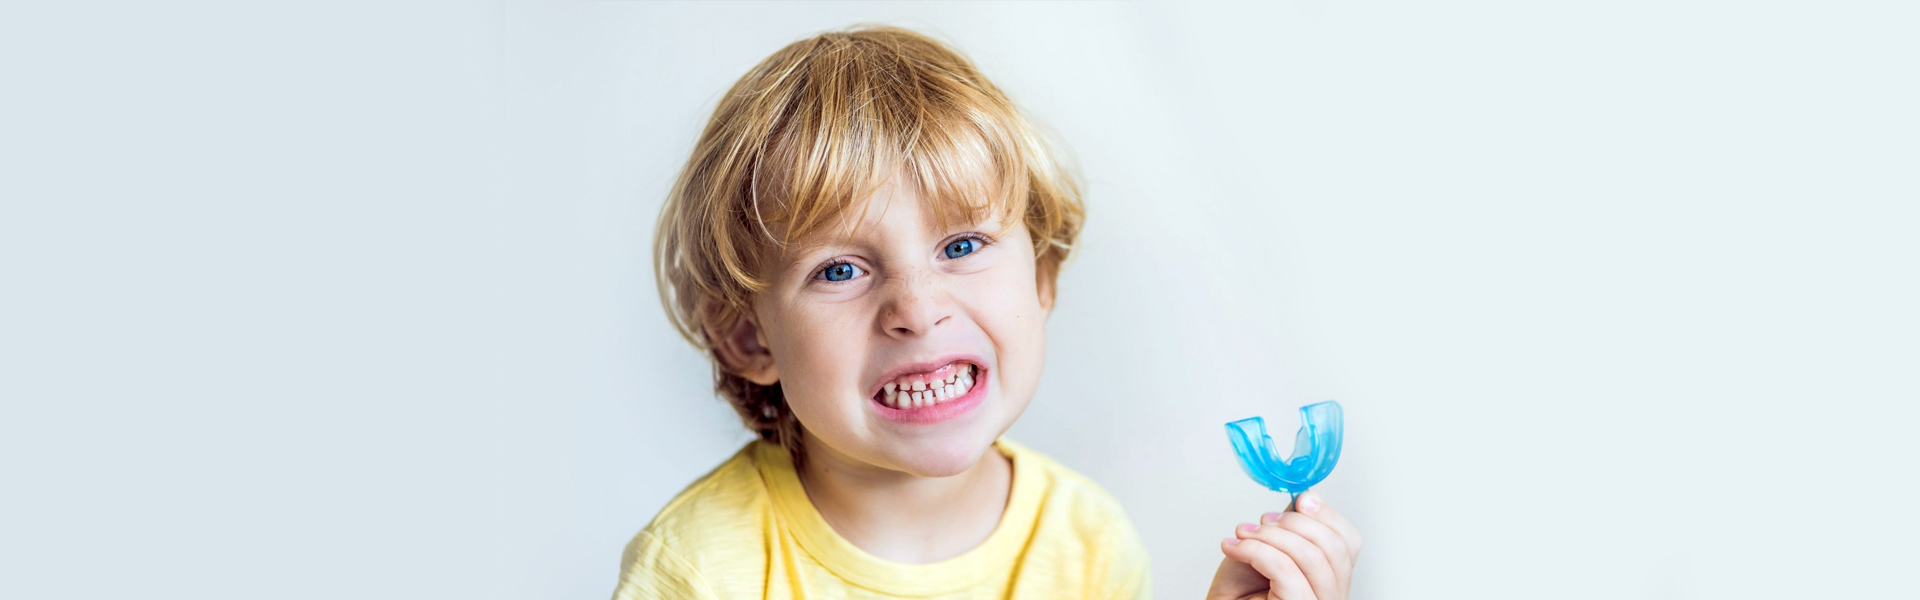 Mouthguards for Children: Why Are They Essential?